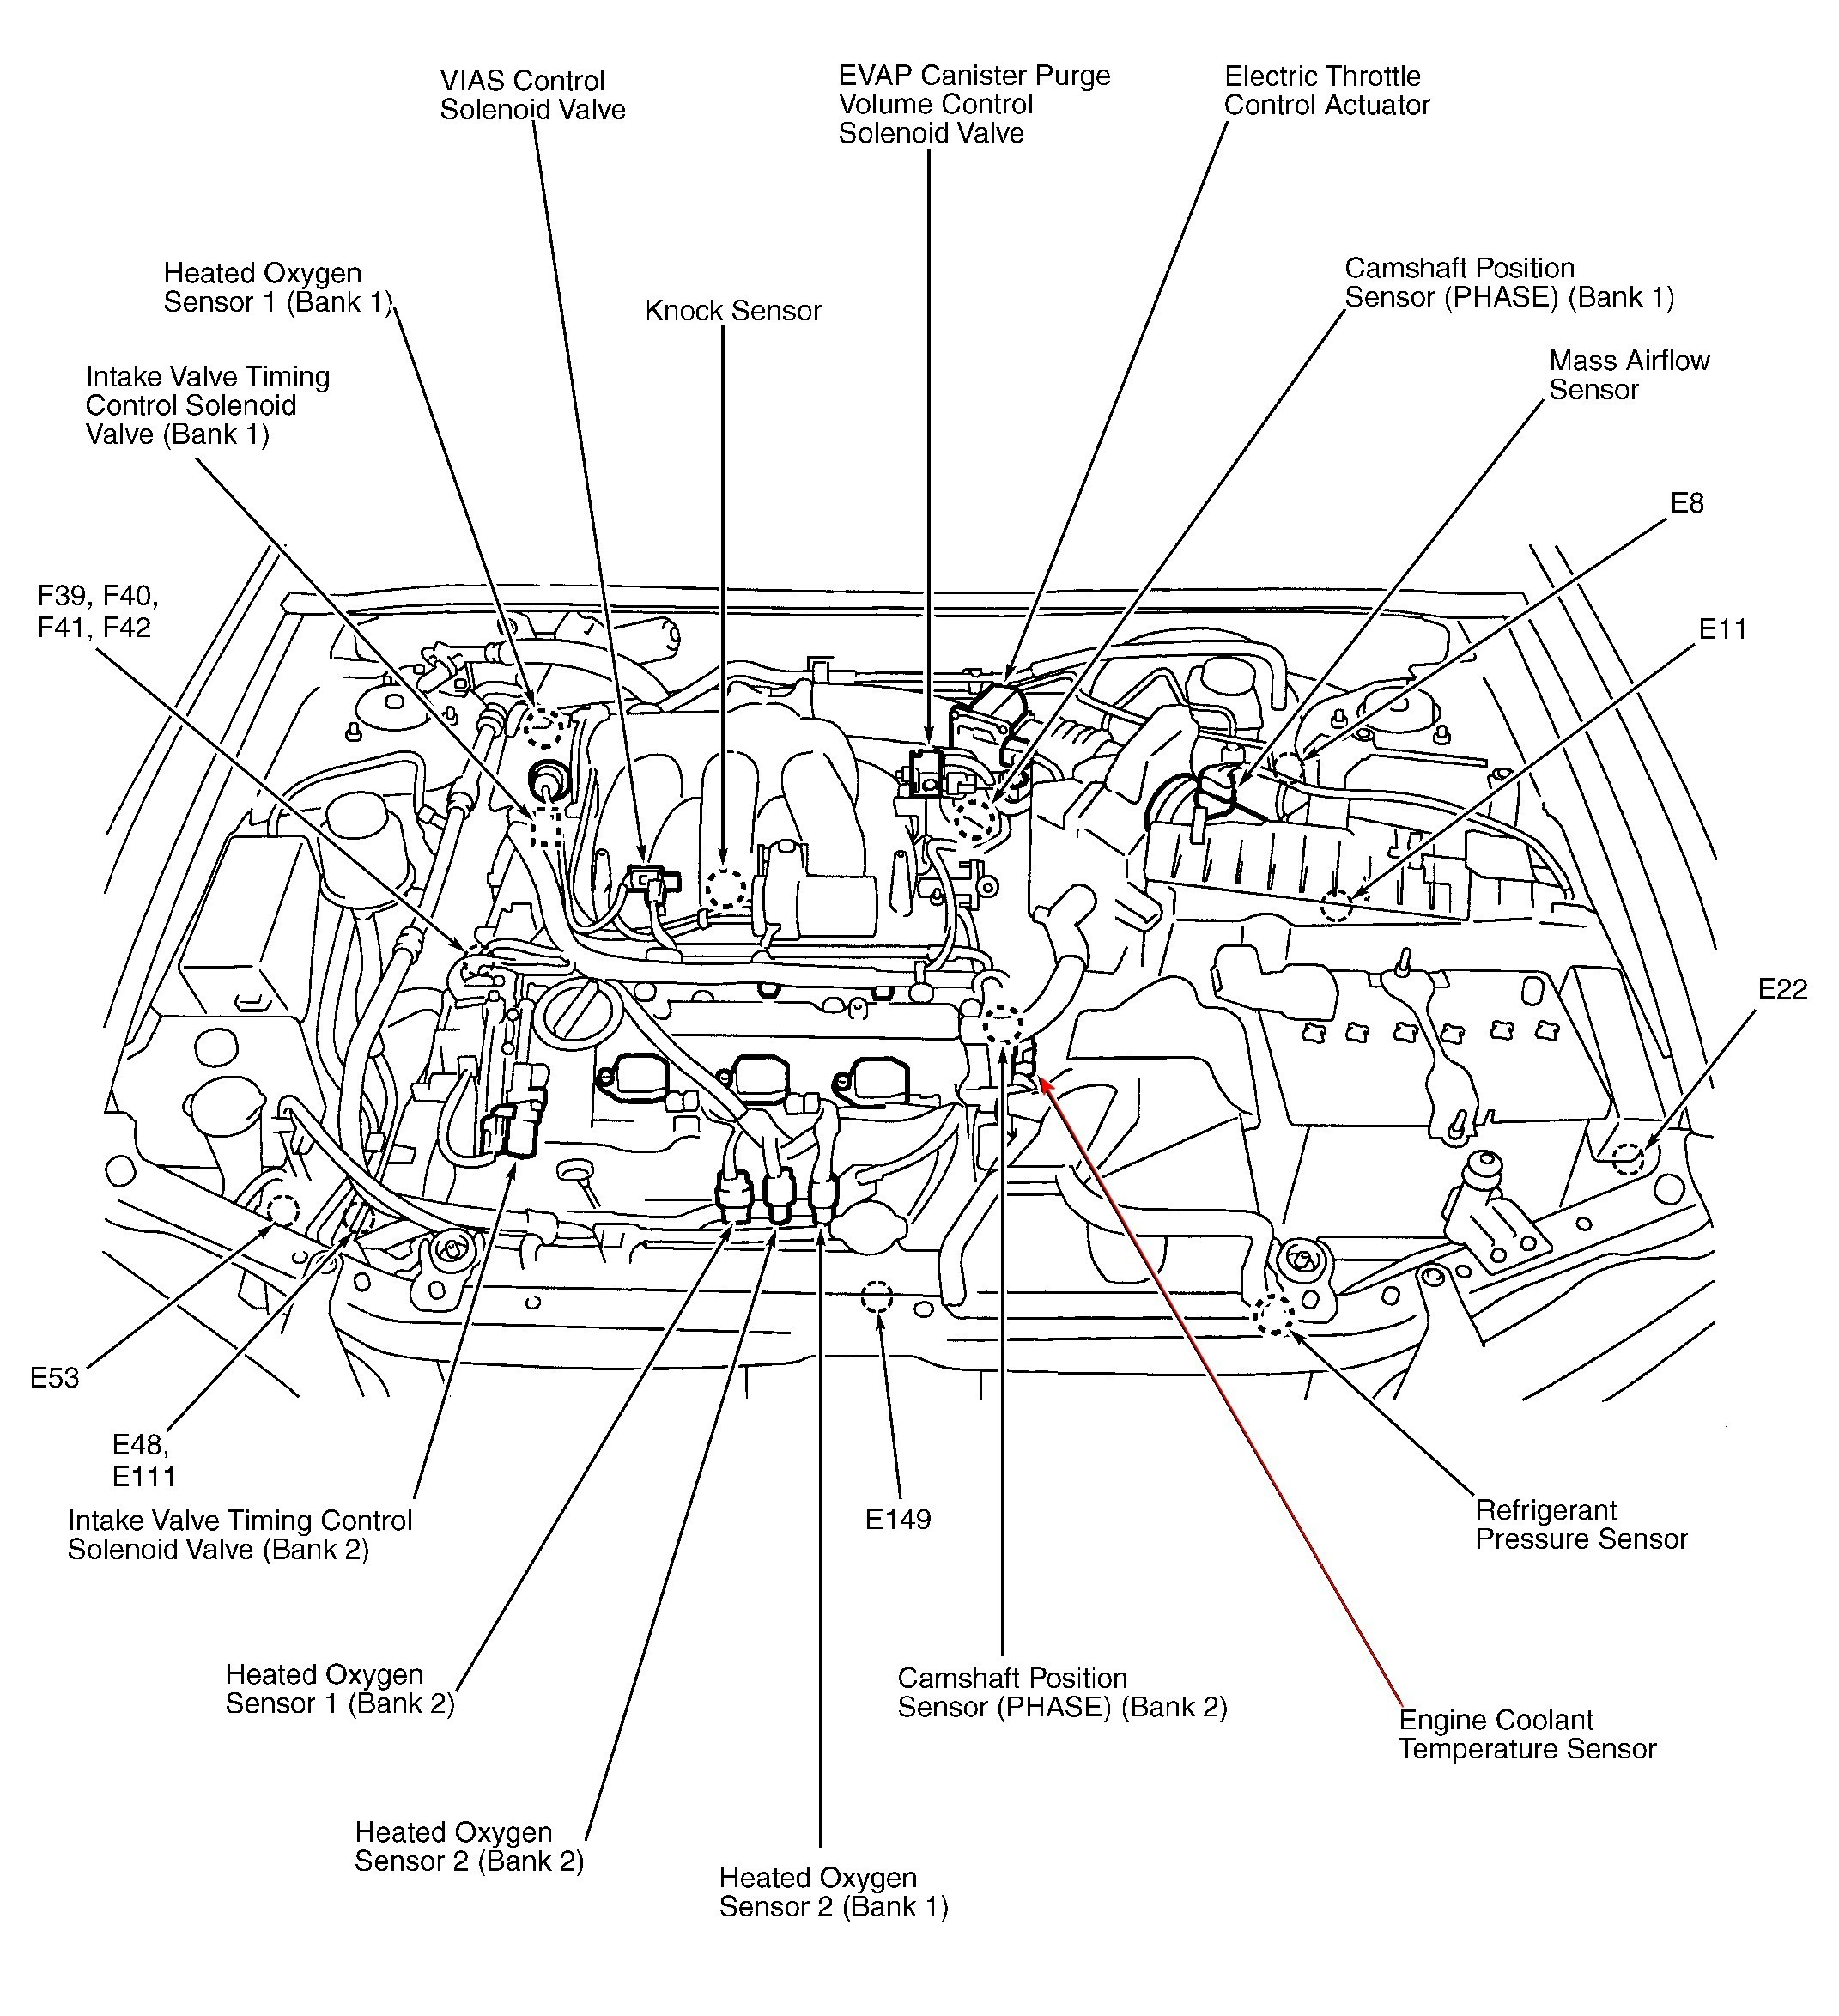 [WRG-7297] 2005 Nissan Pathfinder Engine Diagram Left Side